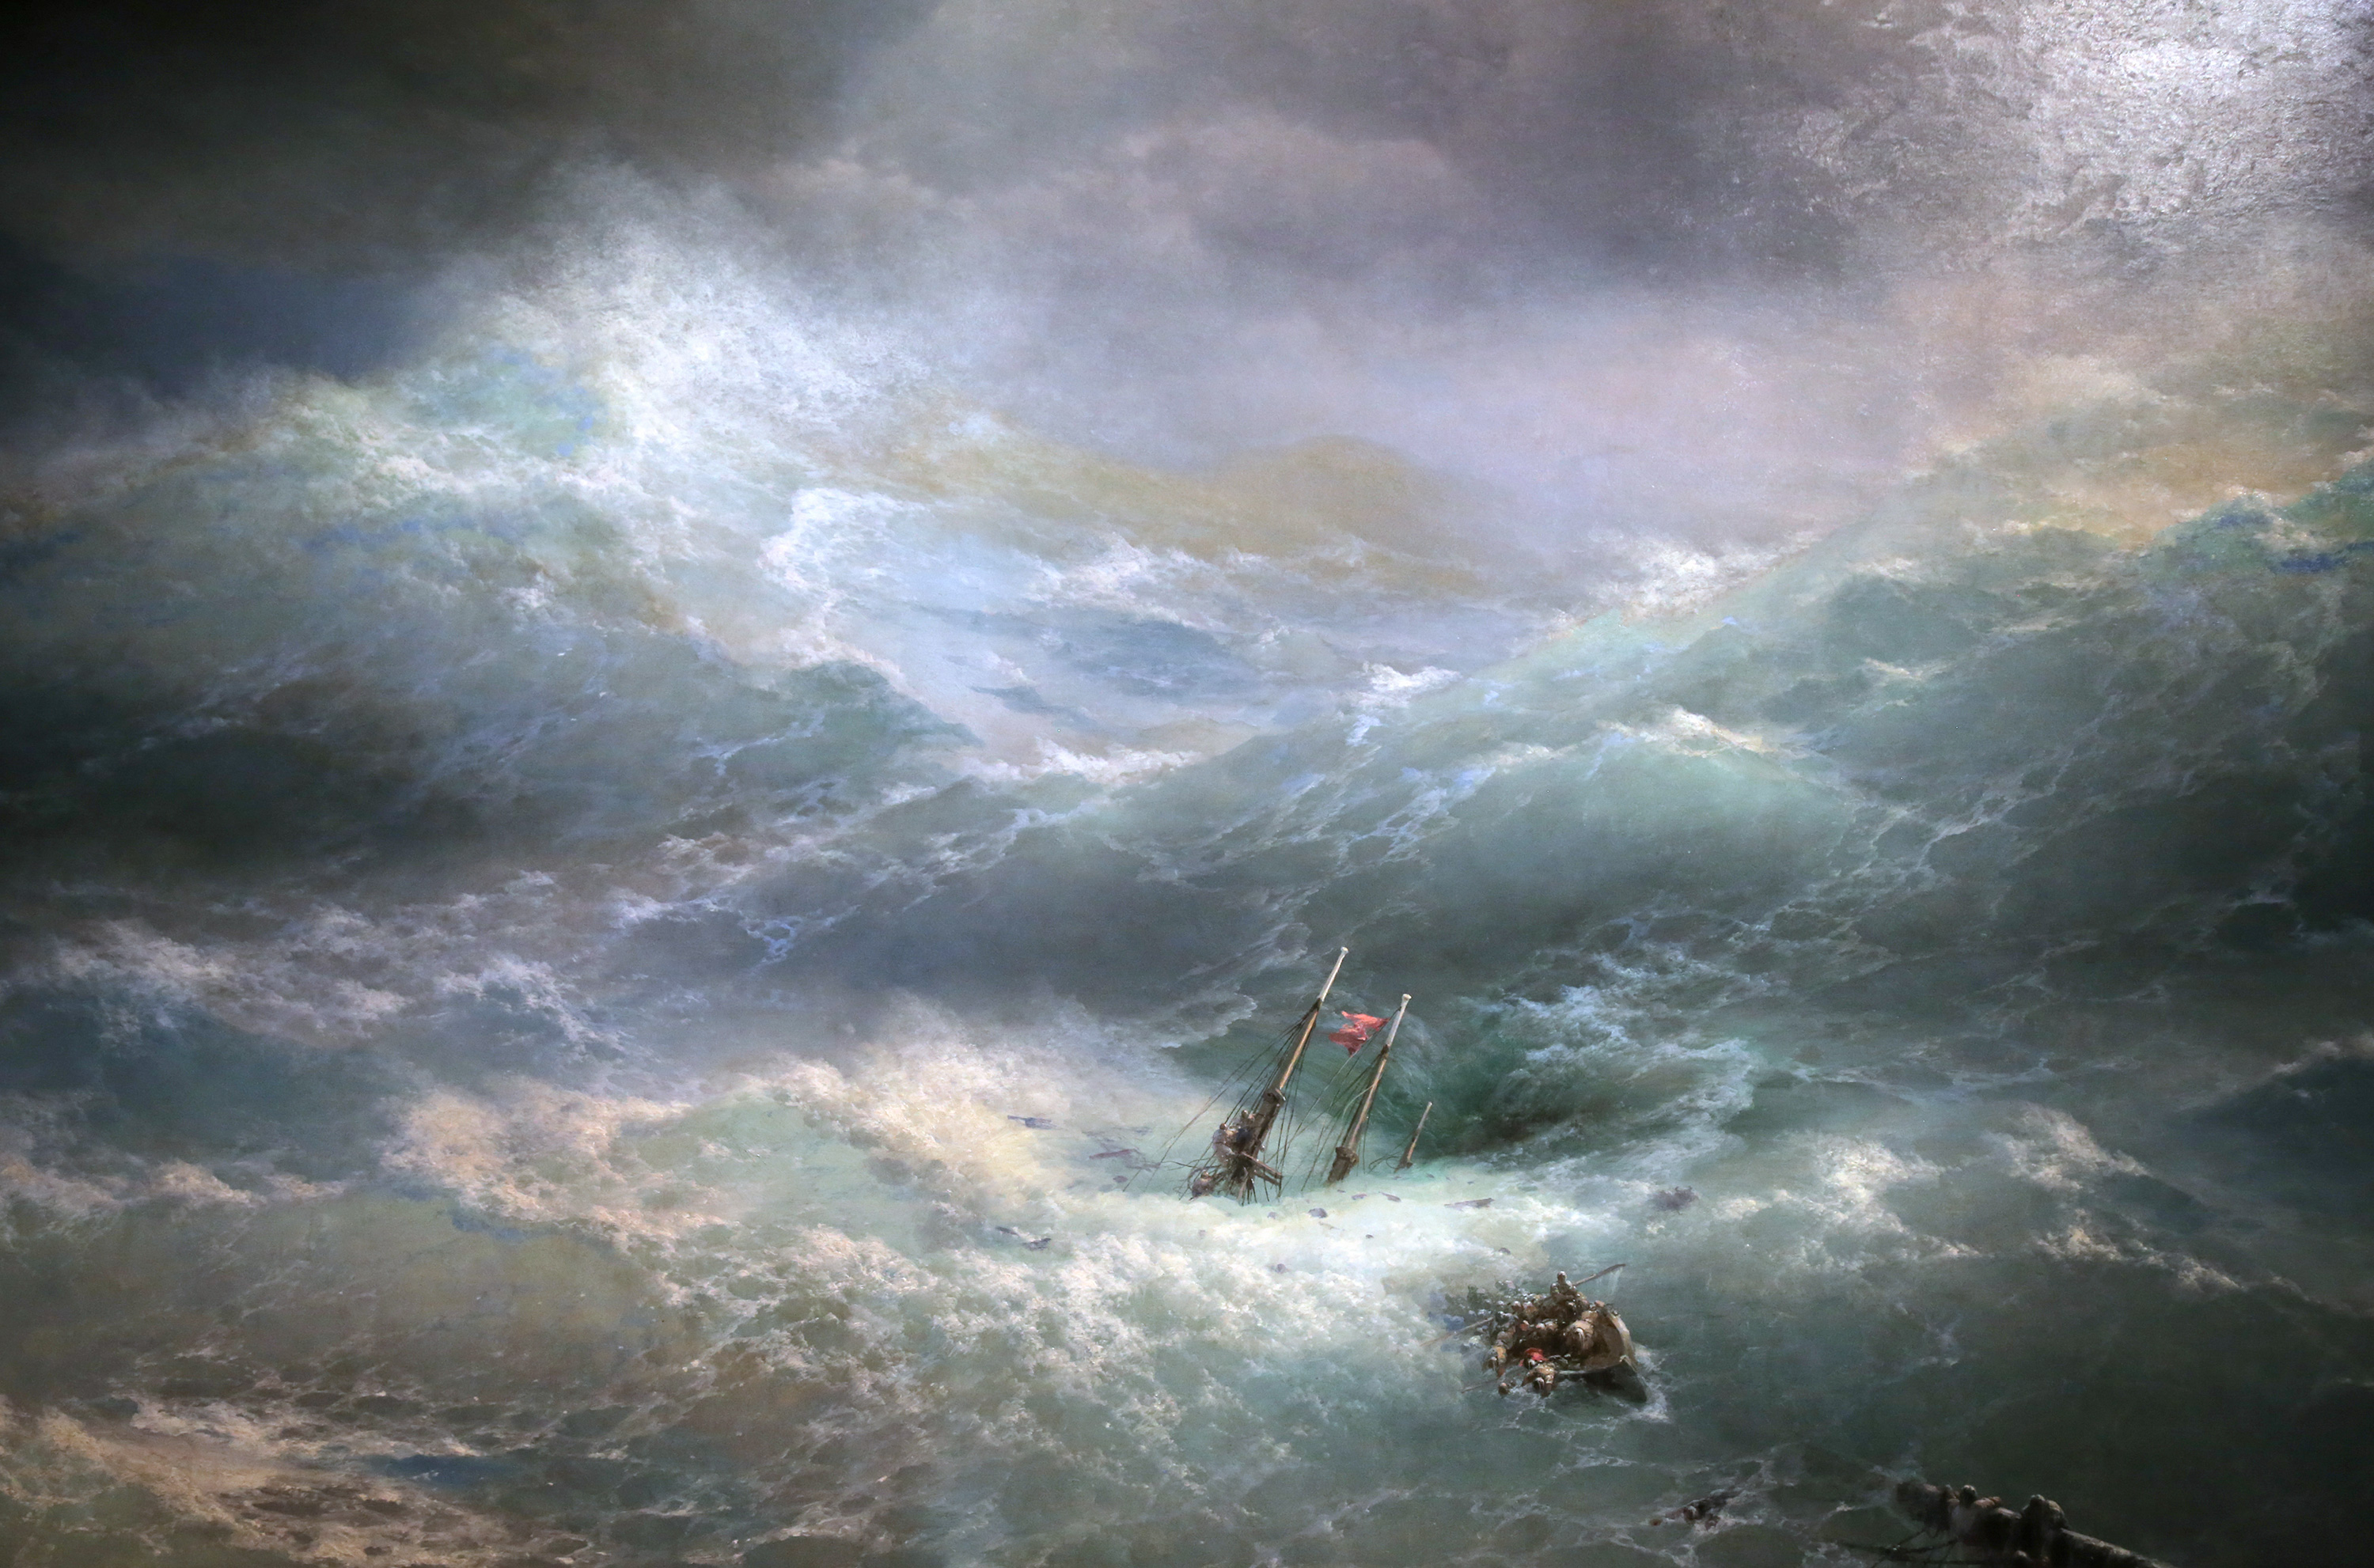 Ivan Aivazovsky's paintings bequeathed to art history ...